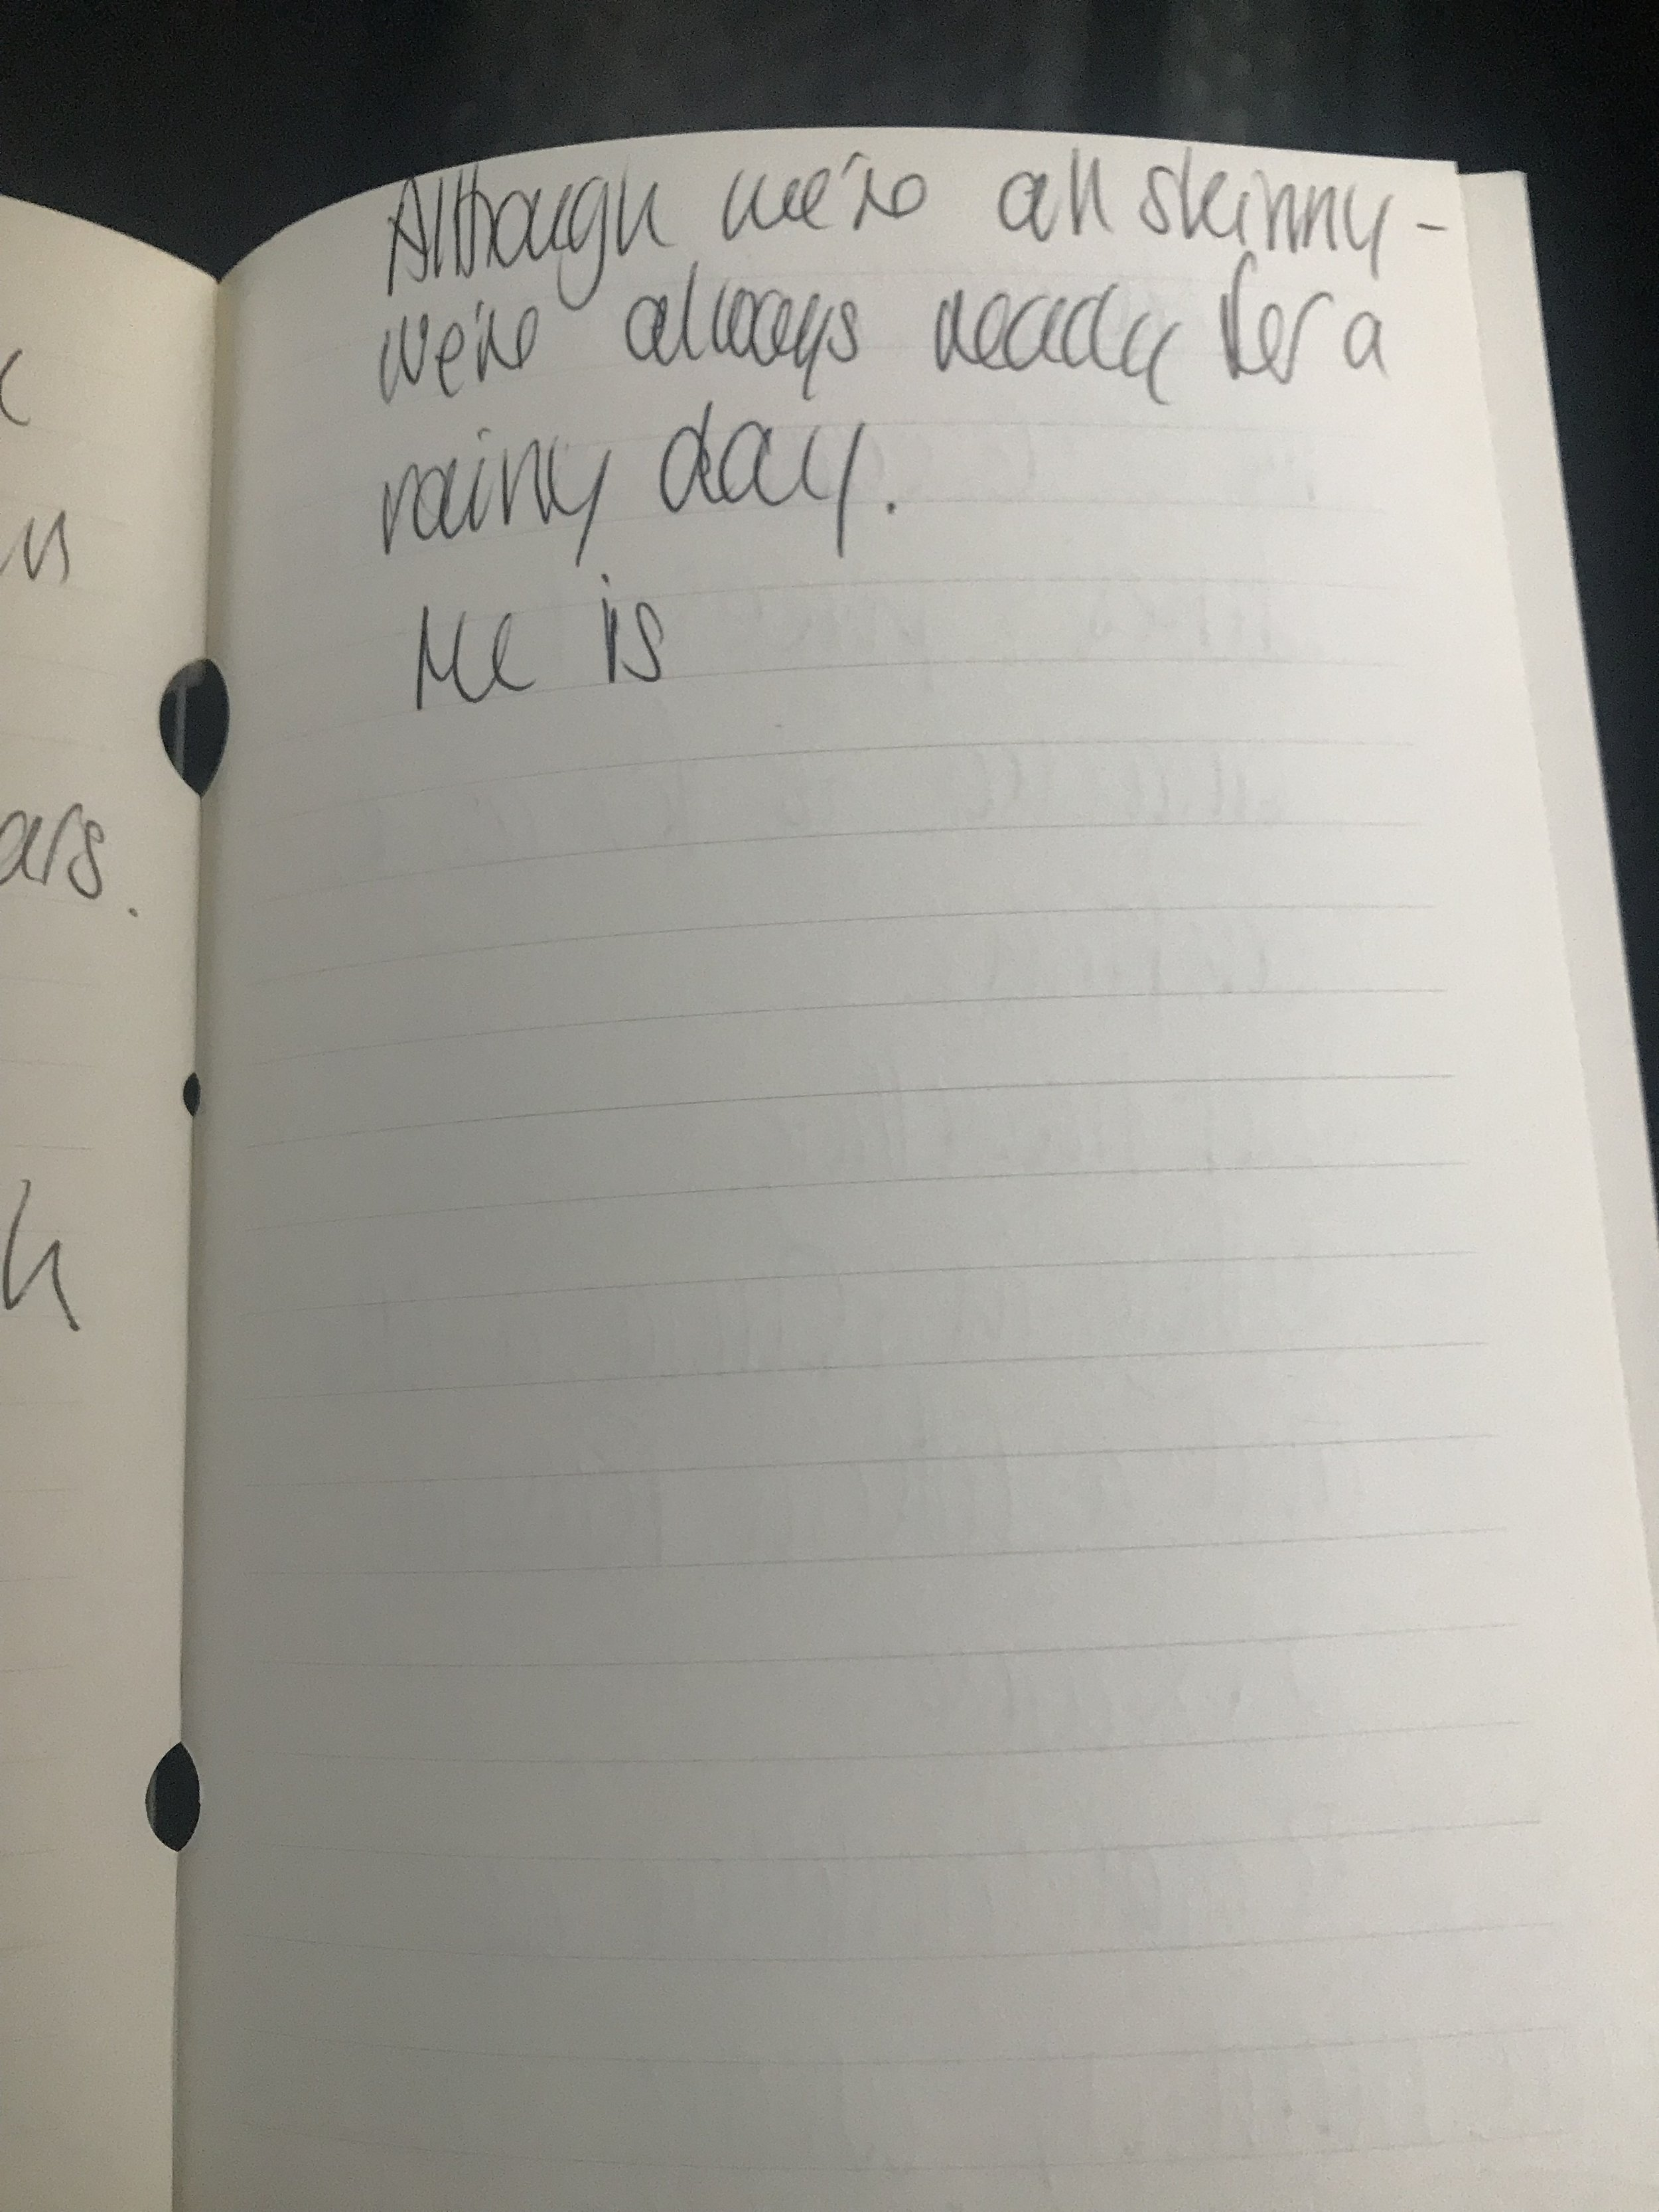 Nettie's notes from the afternoon made us giggle … 'He is' and then it's all a blank!!